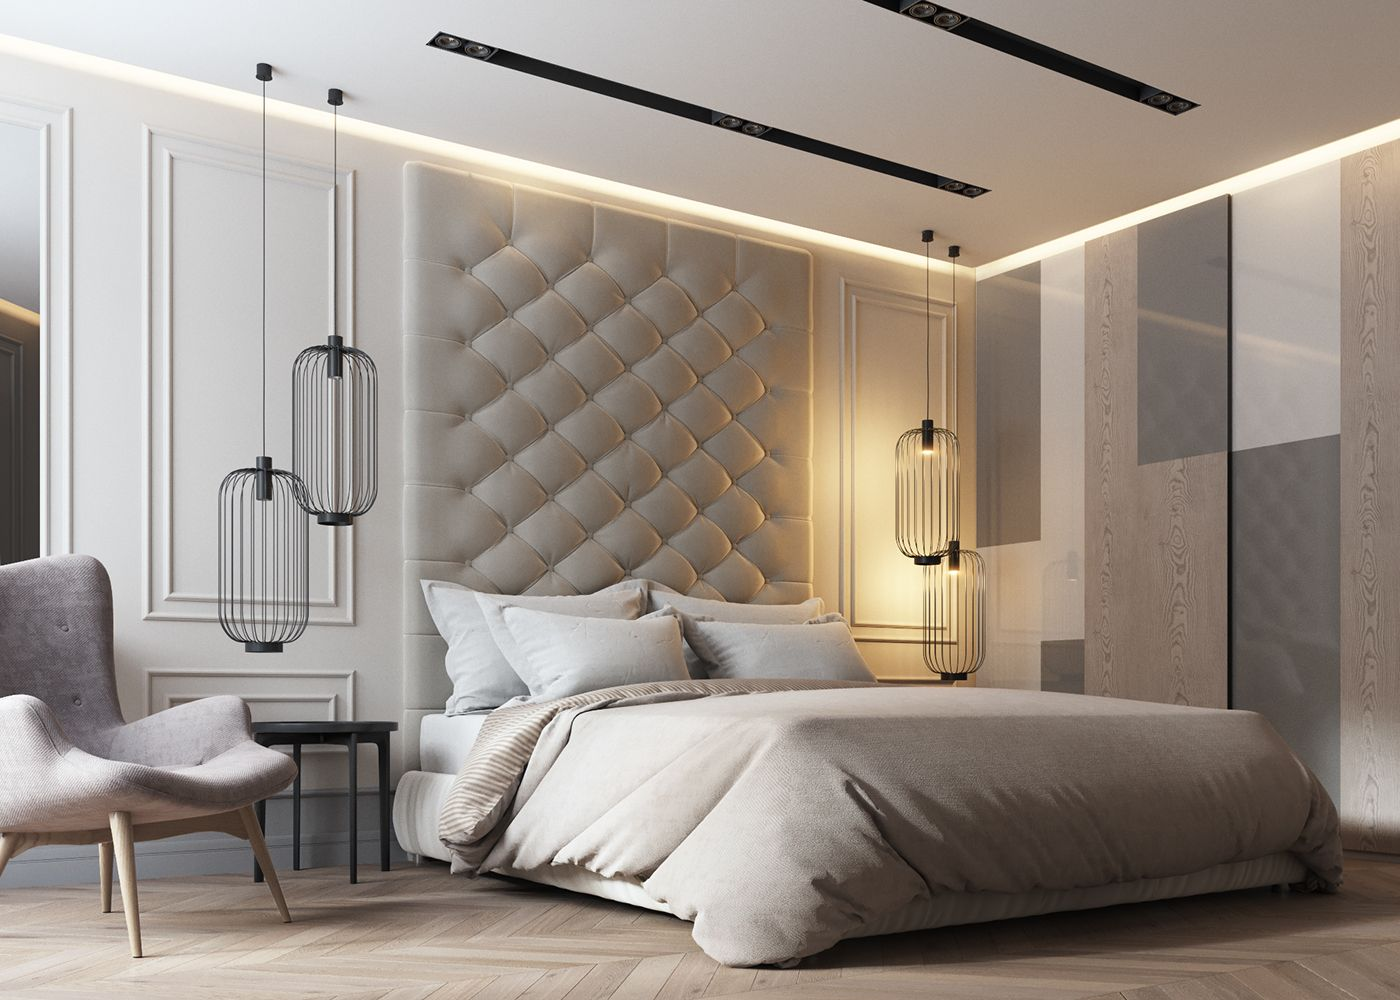 Apartments In UkraineDesign DEDE Interior StudioVisualization Max Tiabys Shpak VizLine Studio Contemporary Bedroom DesignsModern